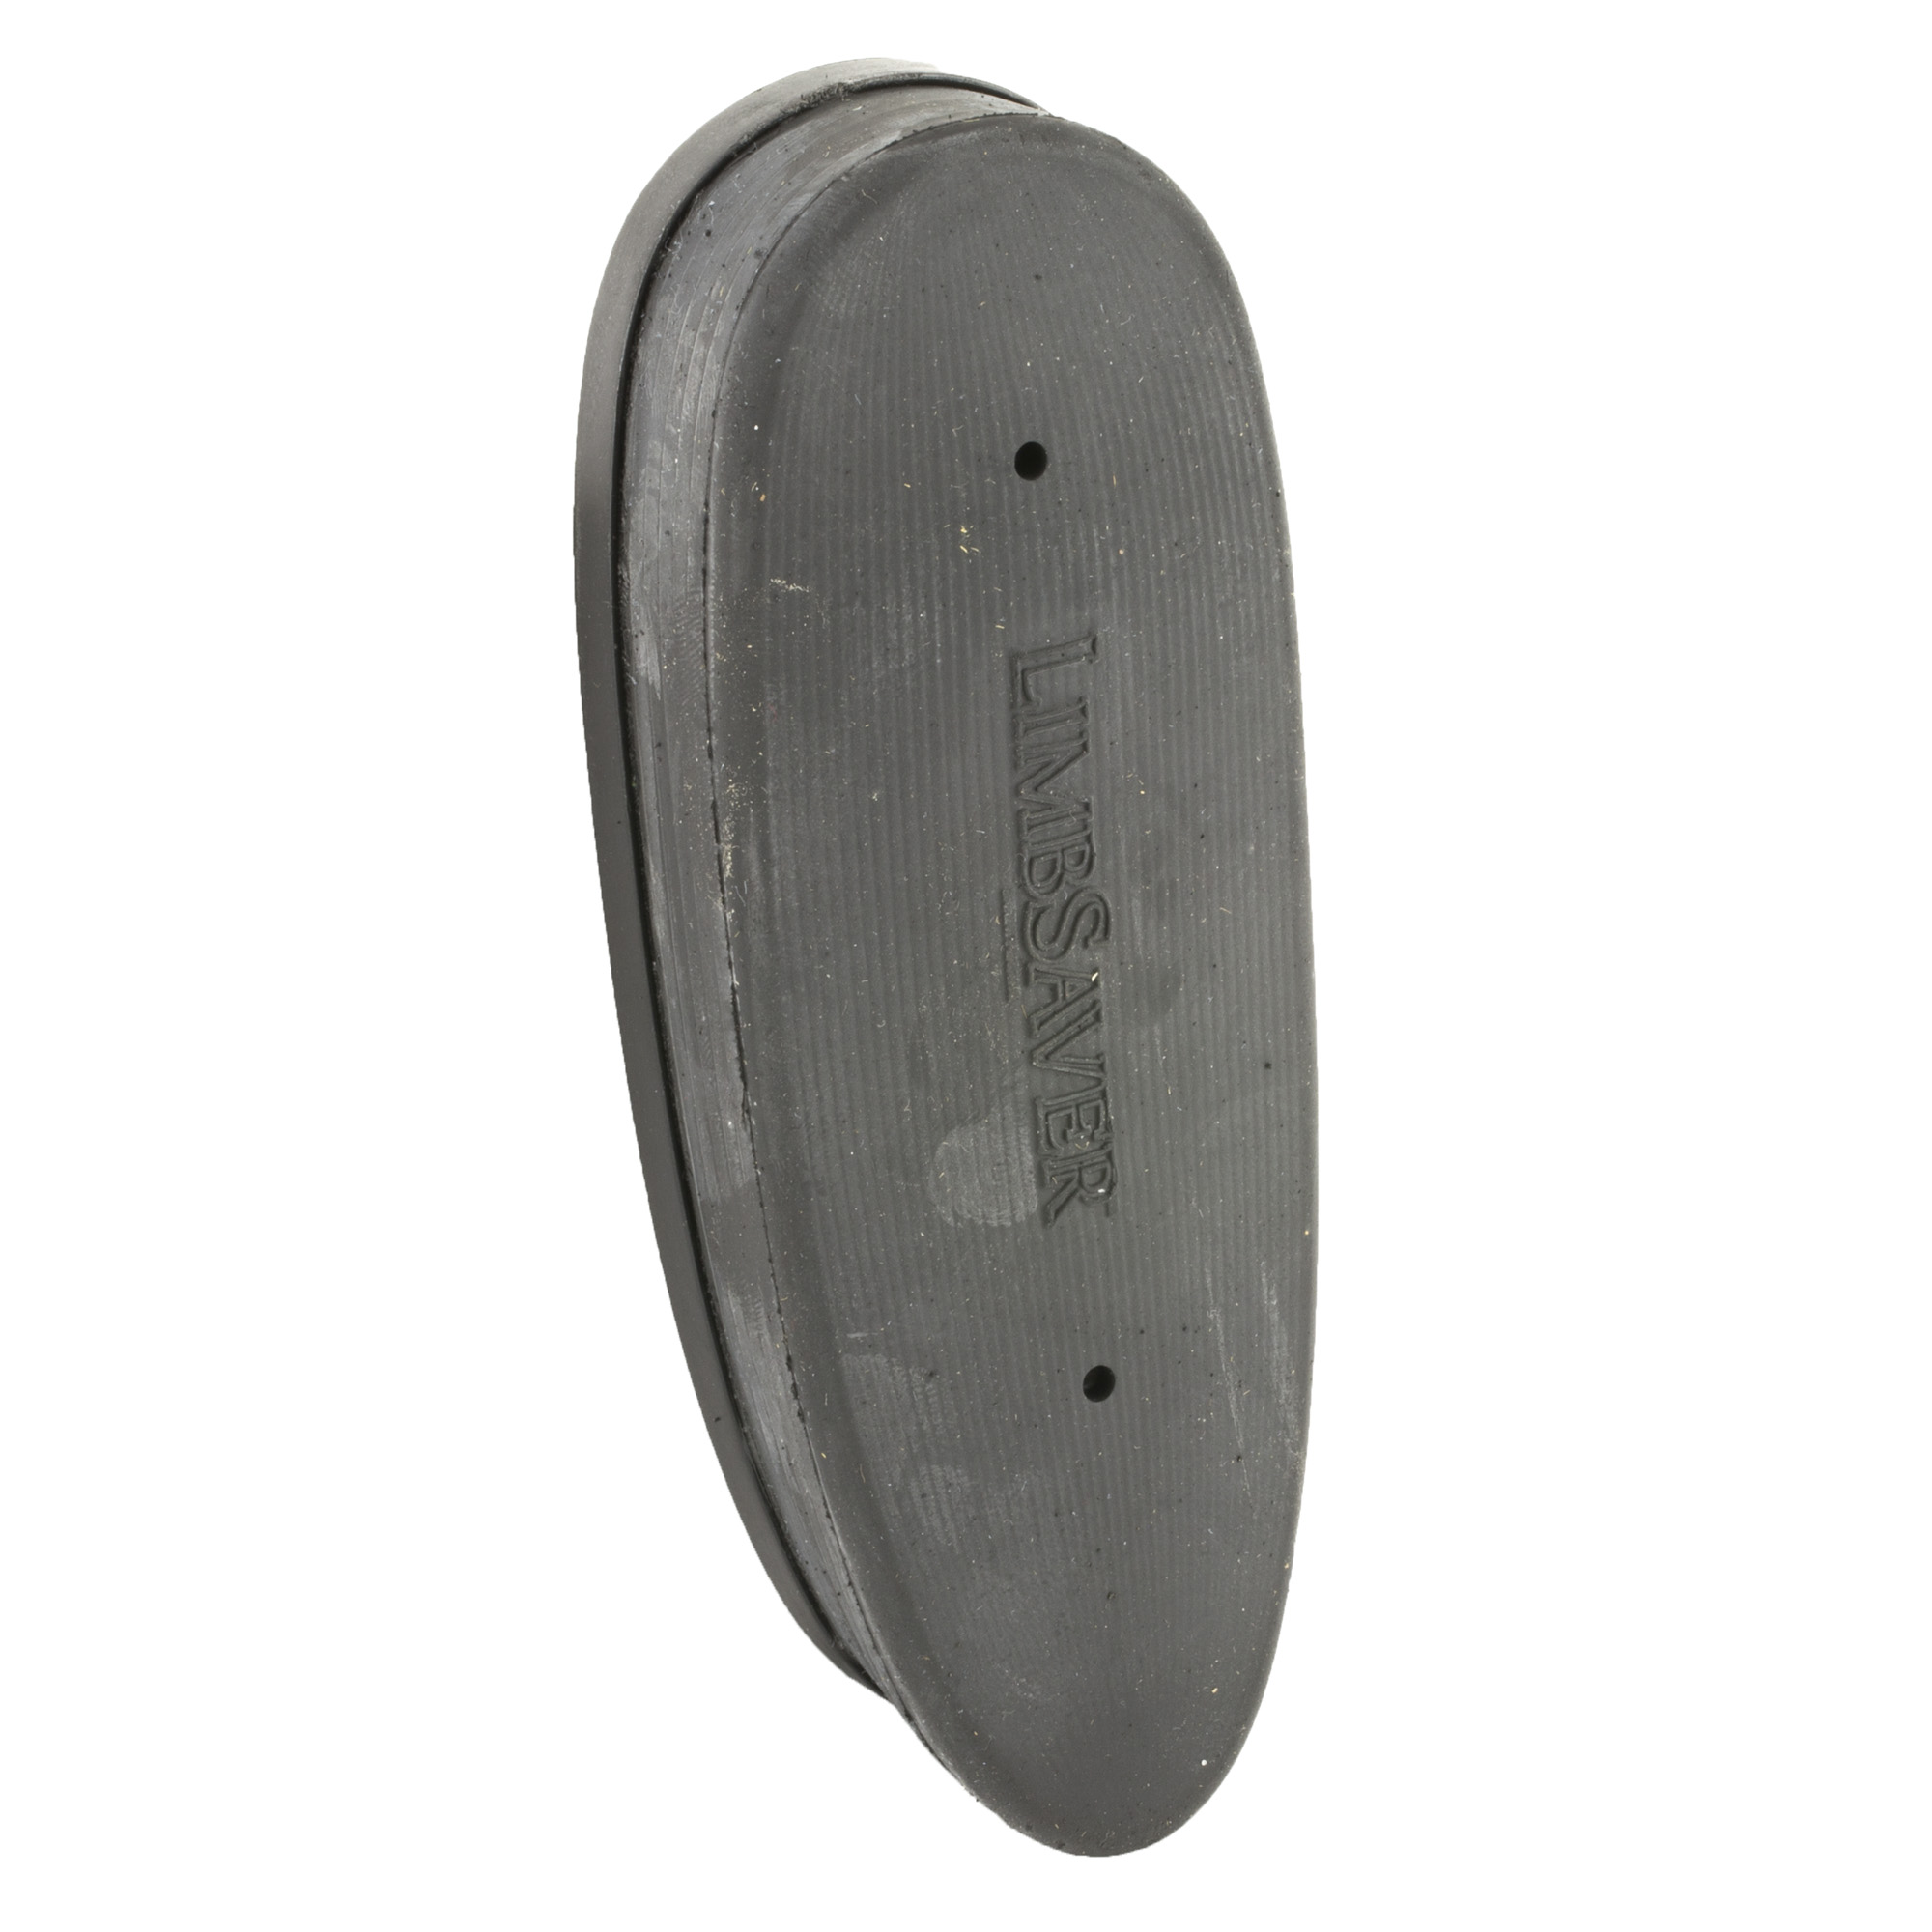 LimbSaver's Grind-To-Fit Recoil Pads are the go-to pads for gunsmiths and custom gun shops all over the world. Upgrade the value of your firearm with a Limb Saver Grind-to-Fit Recoil Pad. It will reduce up to 70% of felt recoil and dramatically reduce muzzle-jump. That means that you will have greater comfort while shooting and will be able to keep shooting longer without the pain and bruising you're accustomed to. Grind-to-Fit recoil pads offer the greatest customization of any Limb Saver recoil pad. They are designed to be perfectly tailored to fit your stock using a belt grinder. Limb Saver recommends that professional shops modify and install these pads.